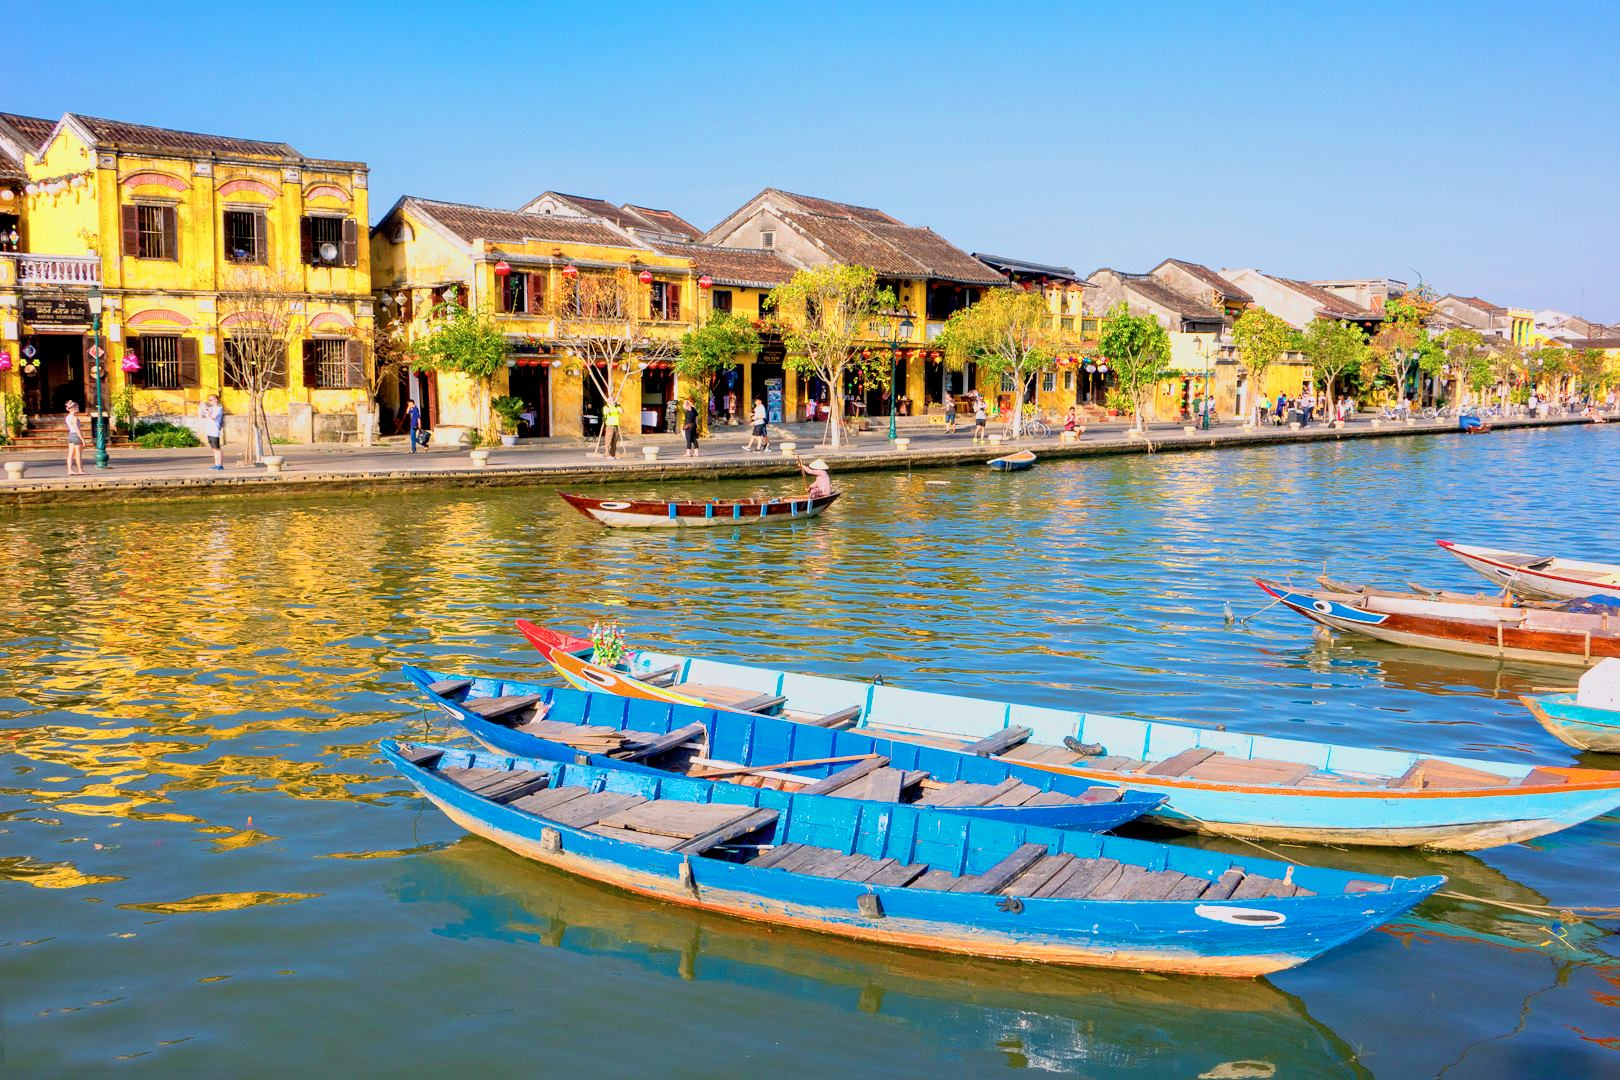 Hoi An Walking Tour, Foot Massage 60 minutes and Hoi An Speciality Lunch Voucher